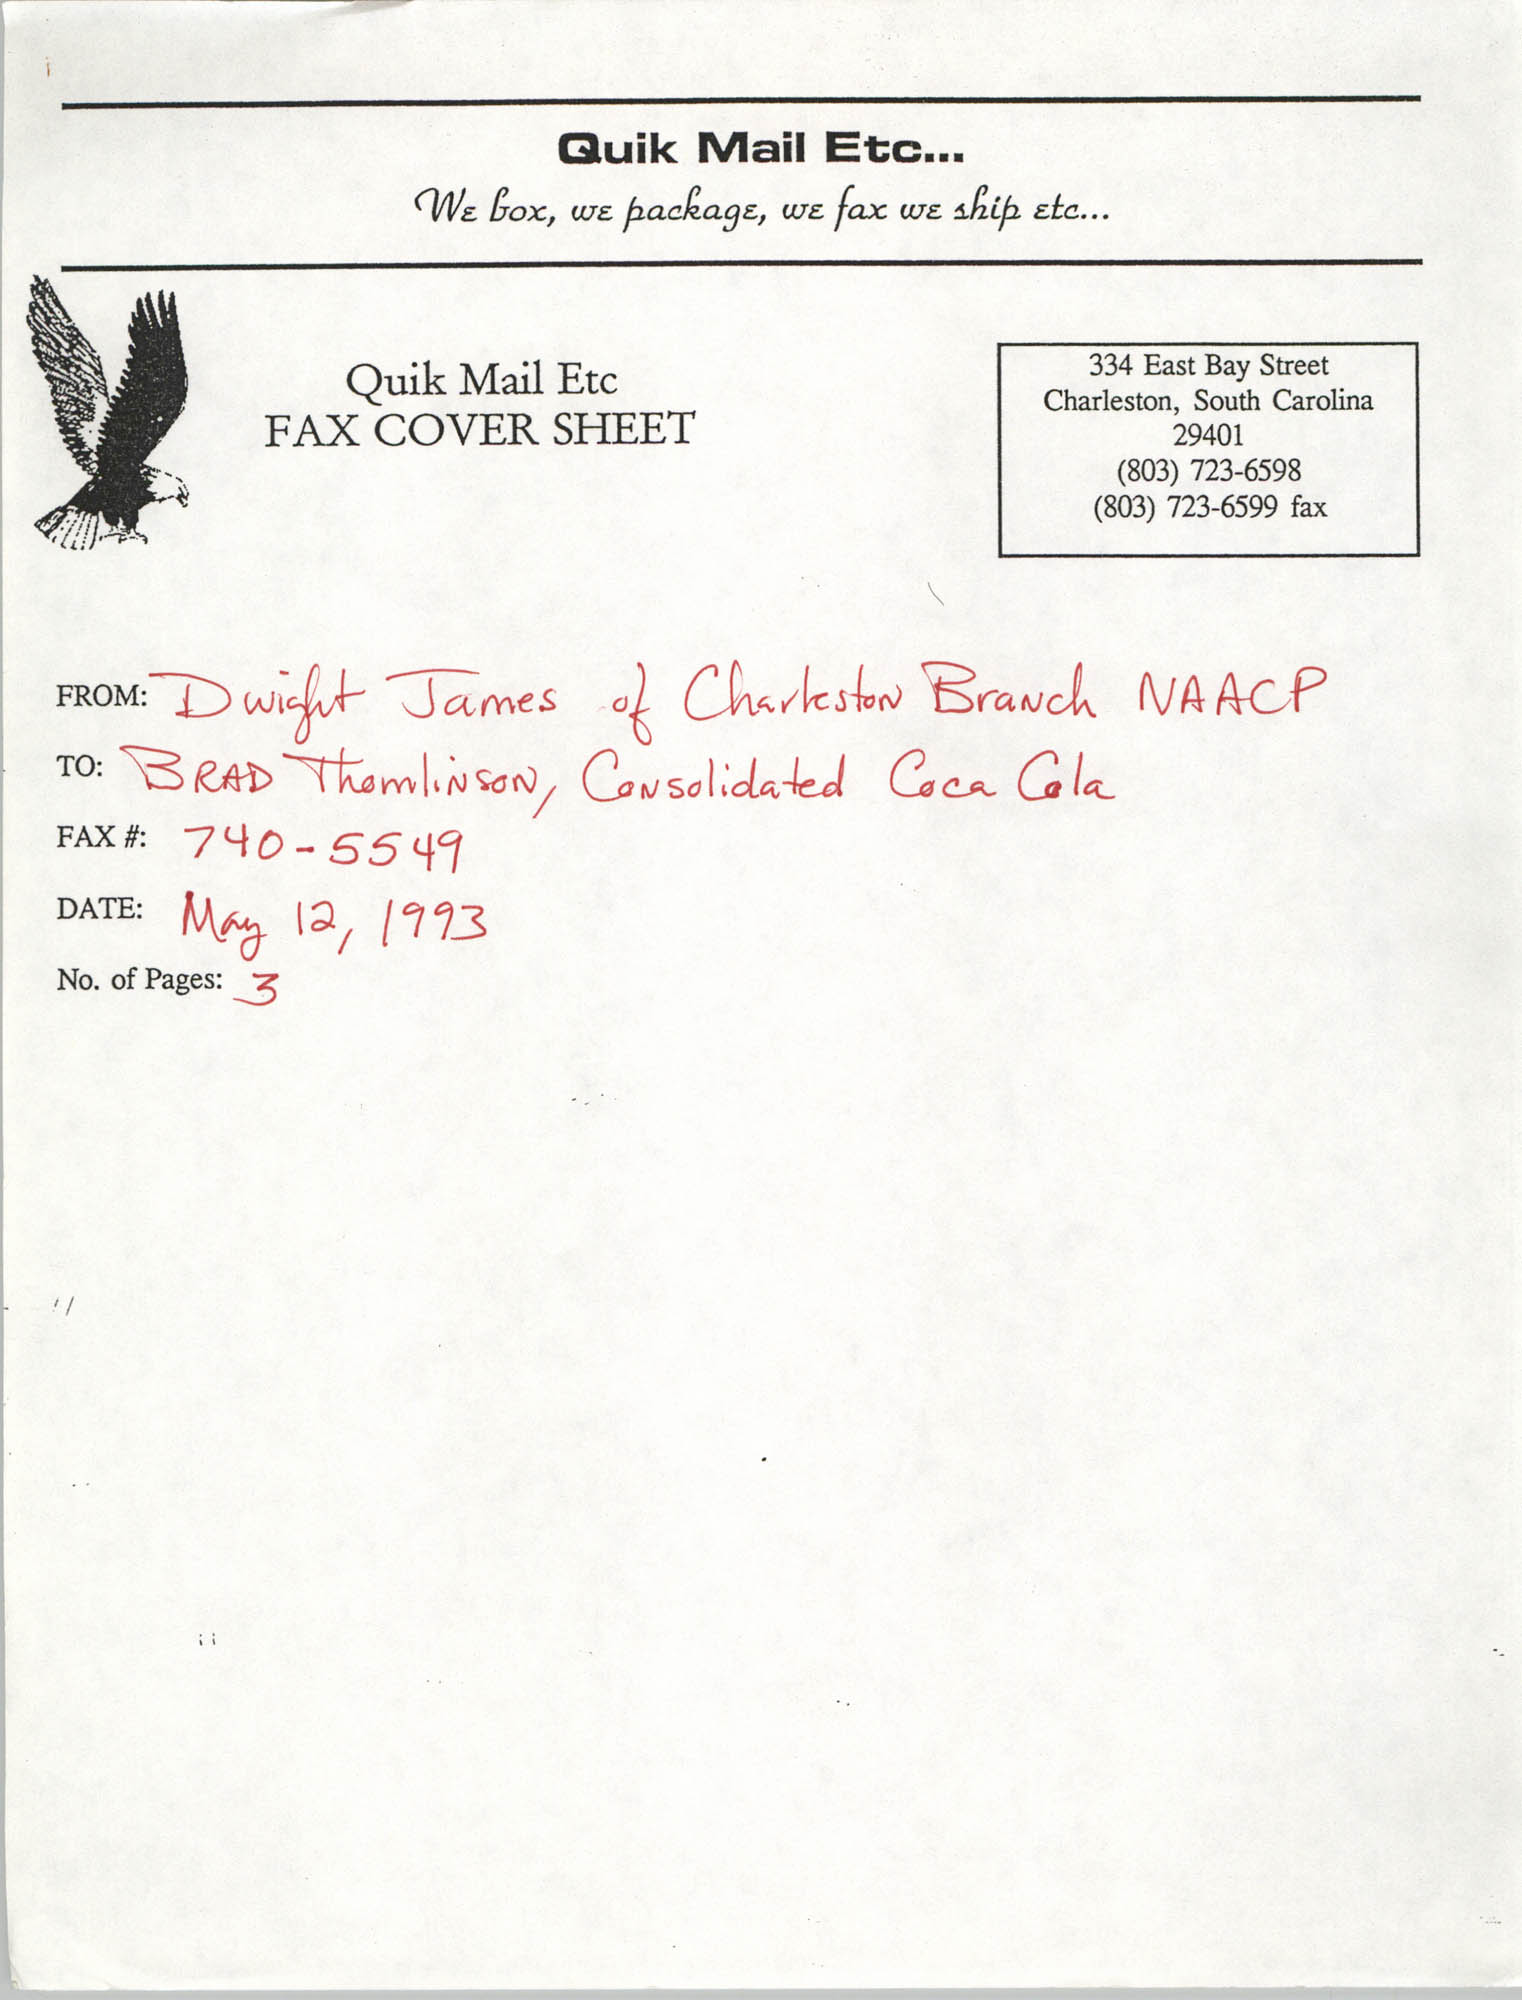 Letter from Dwight James to Brad Thomlinson, May 12, 1993